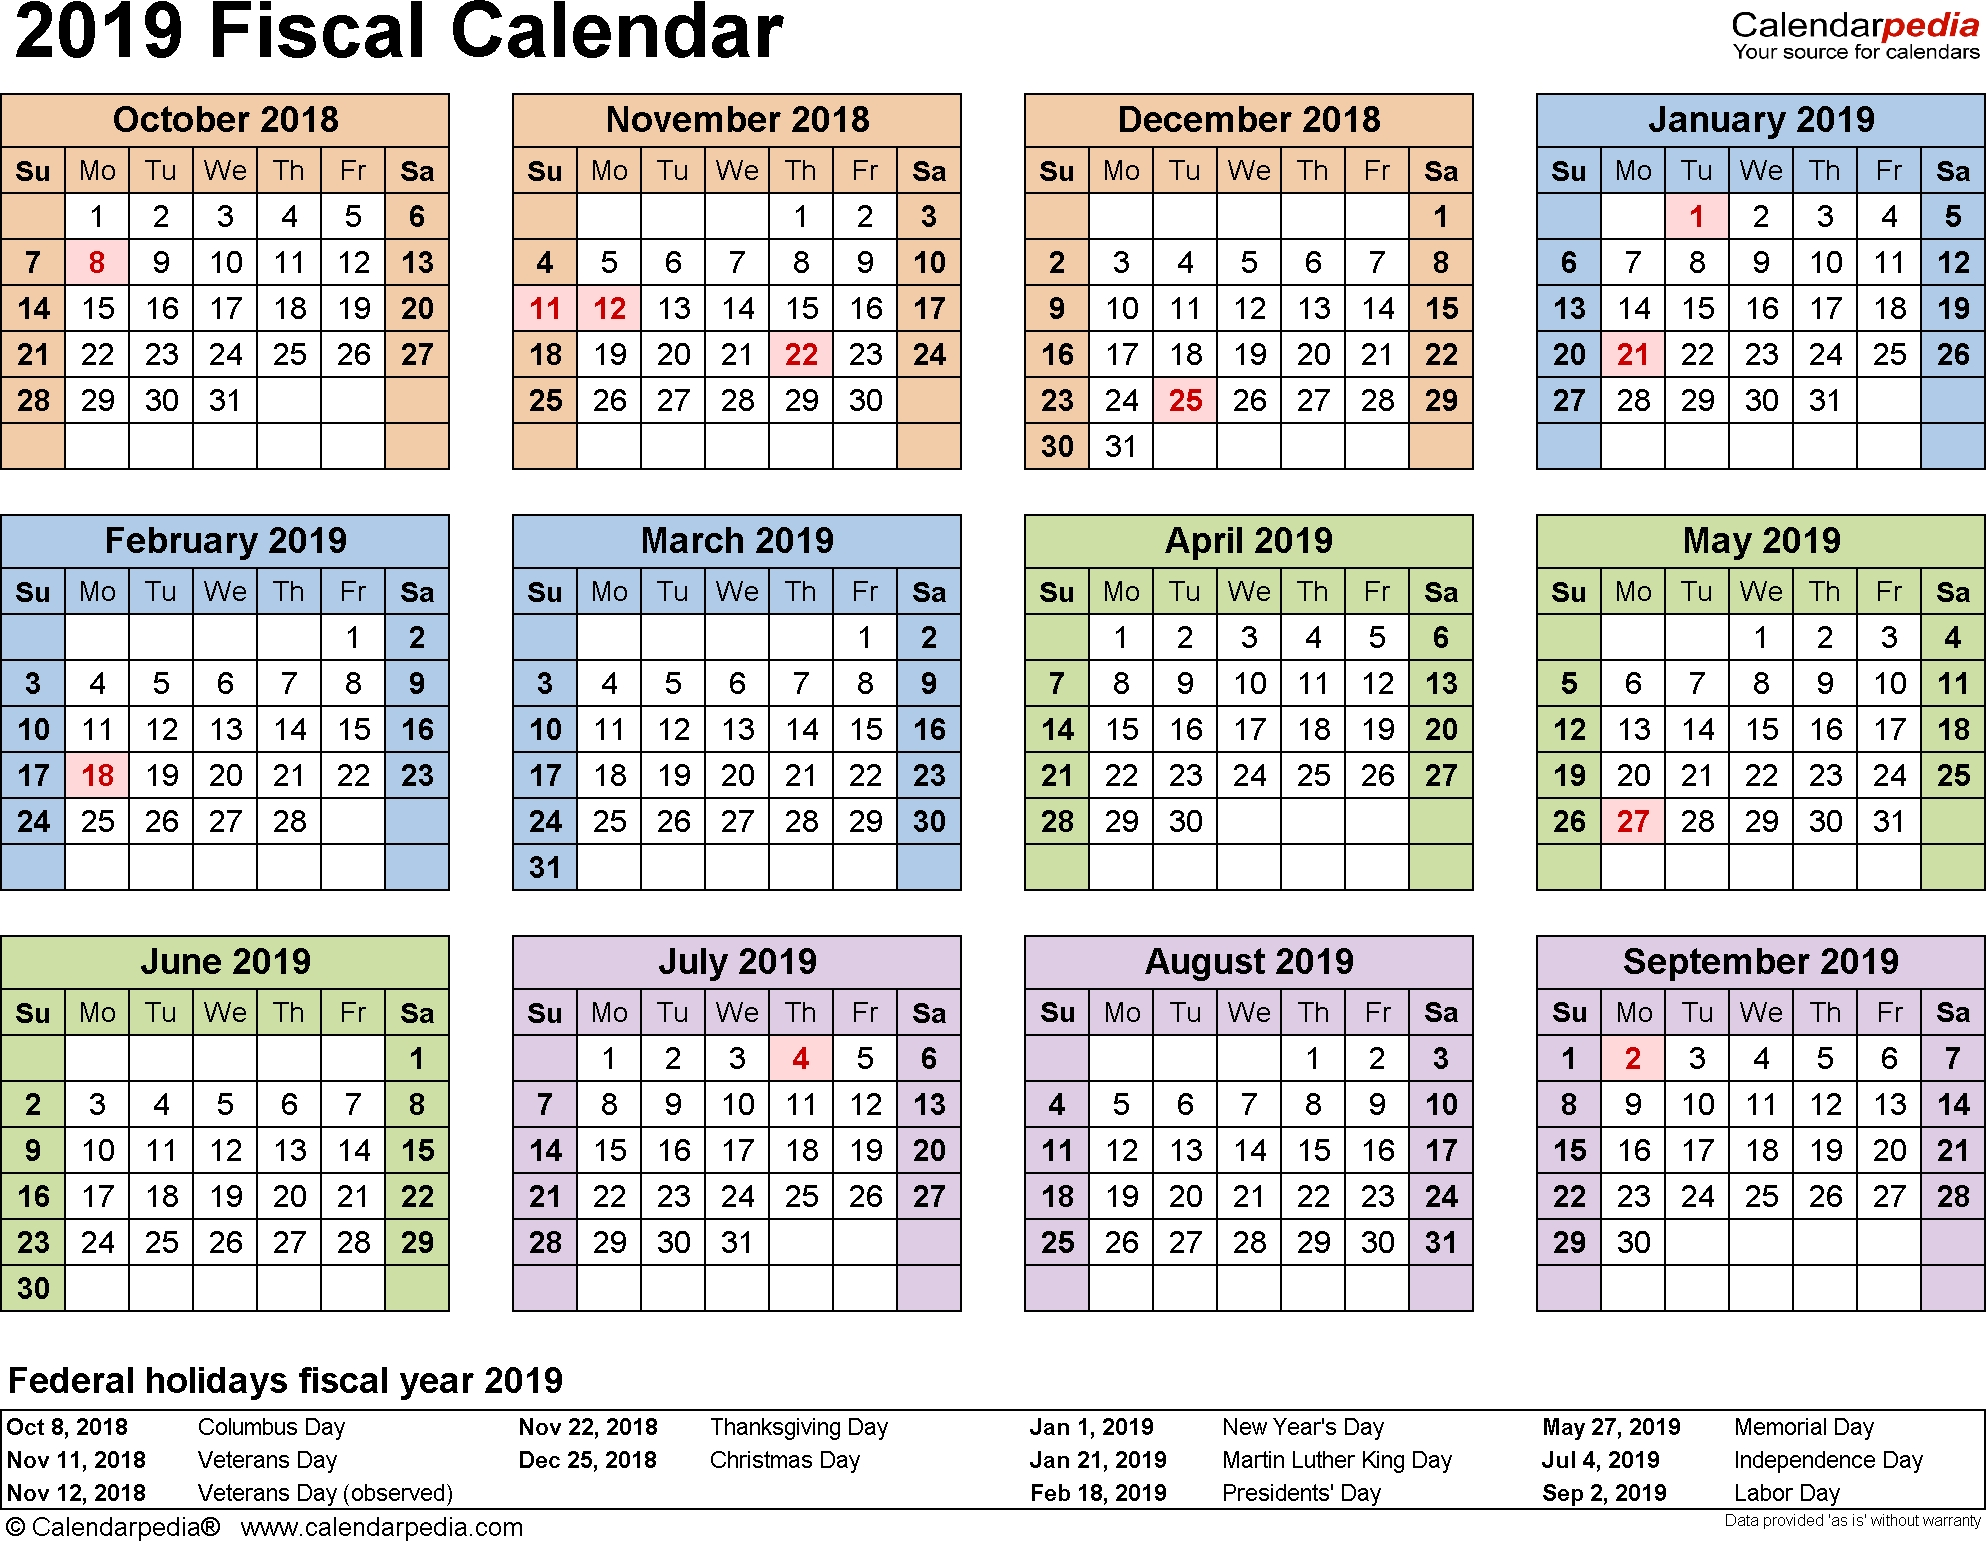 Fiscal Calendars 2019 As Free Printable Pdf Templates in 2019-2020 Calendar Financial Week Numbers